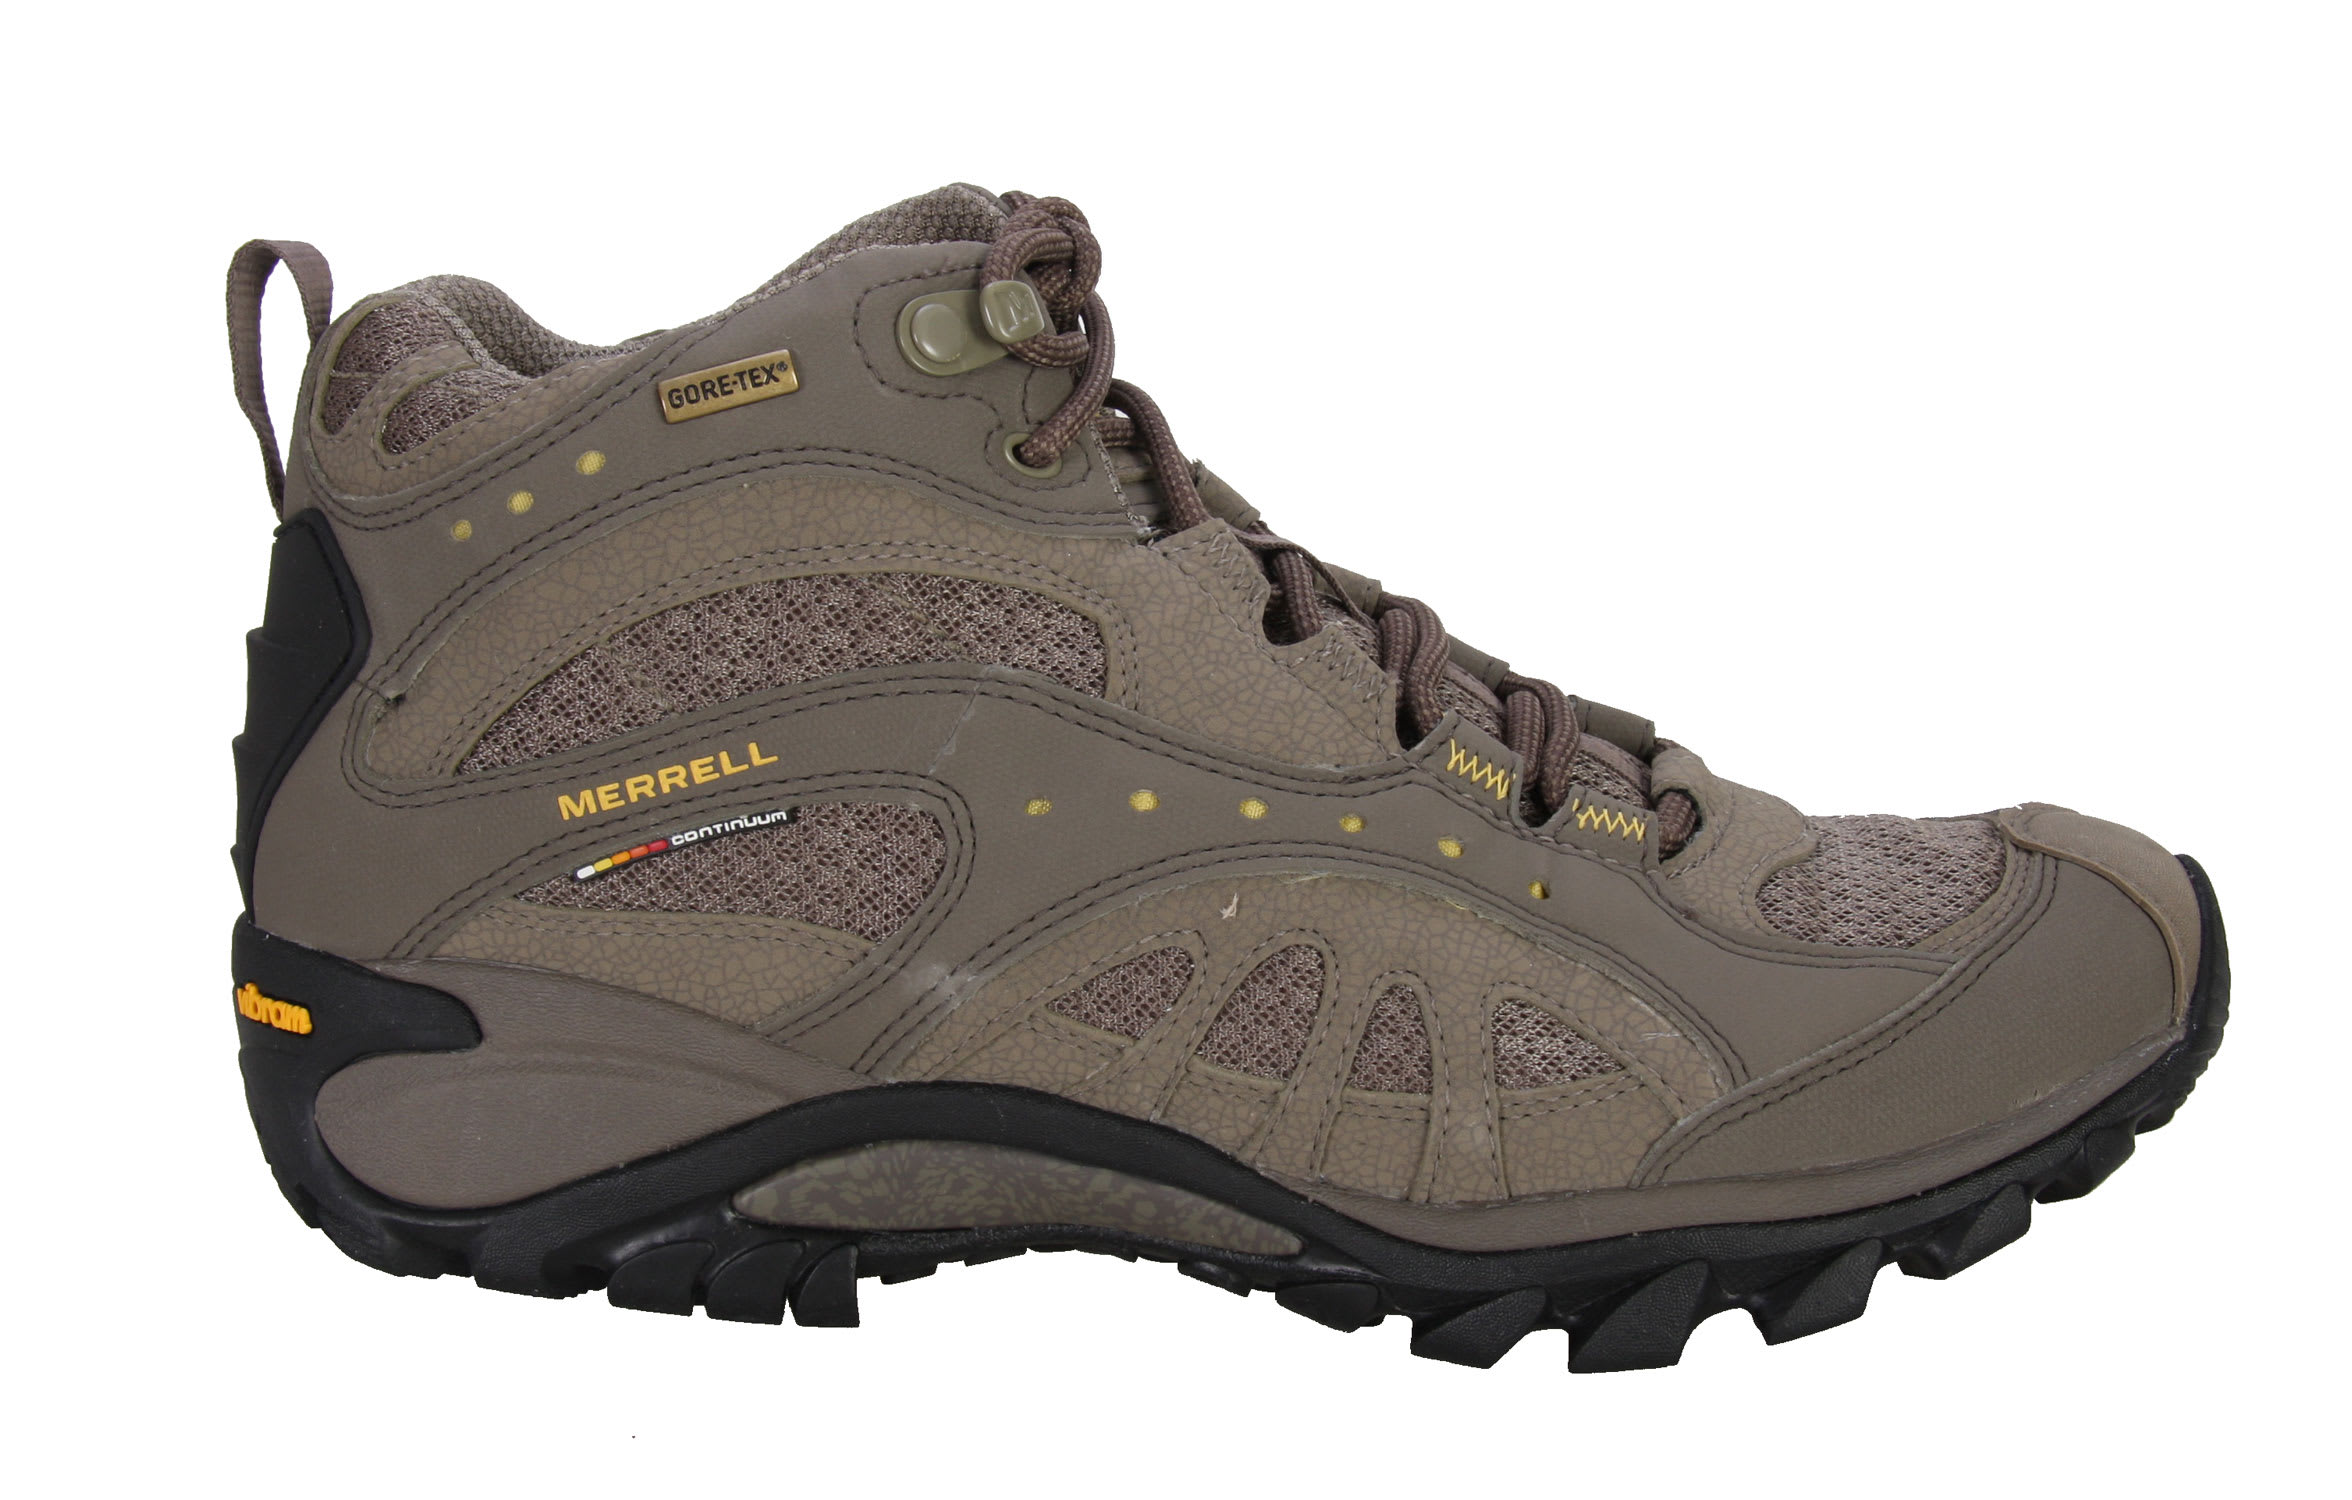 On Sale Merrell Siren Song Mid Sport GTX Hiking Shoes Seagrass Women s